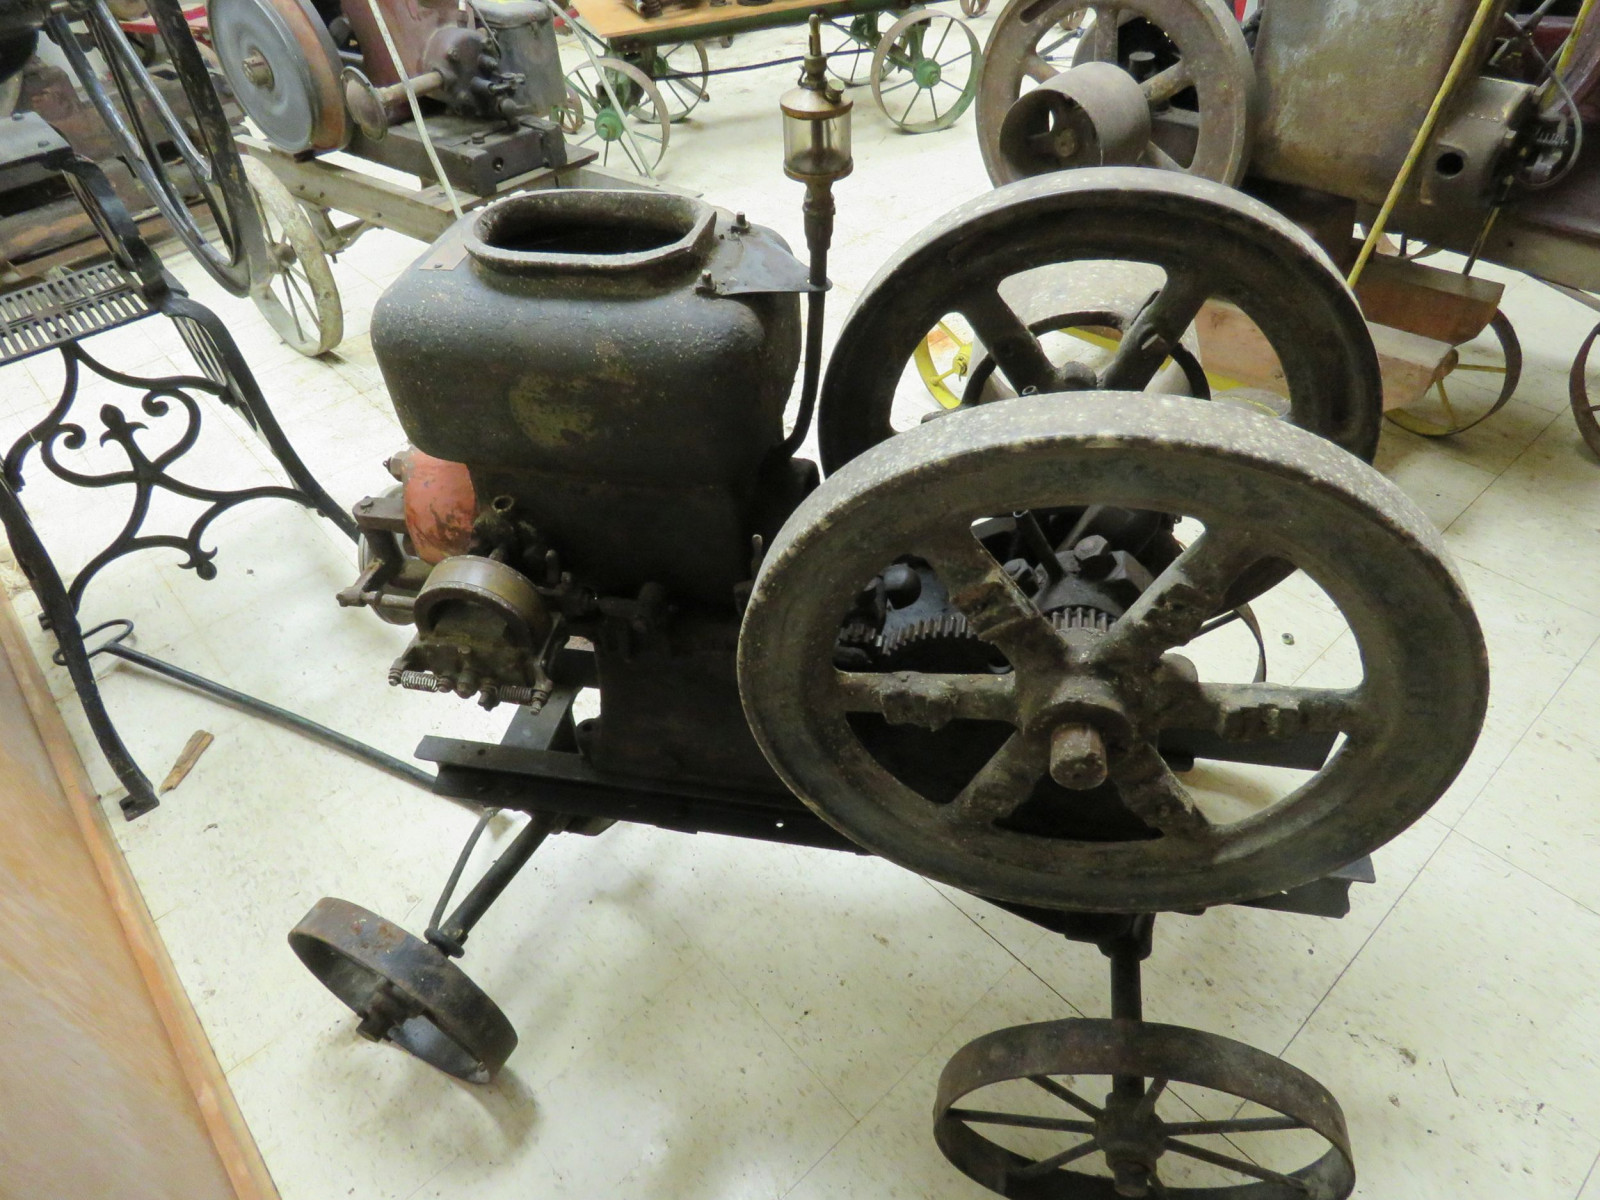 Original 3hp Stationary Gas Engine on Cart - Image 6